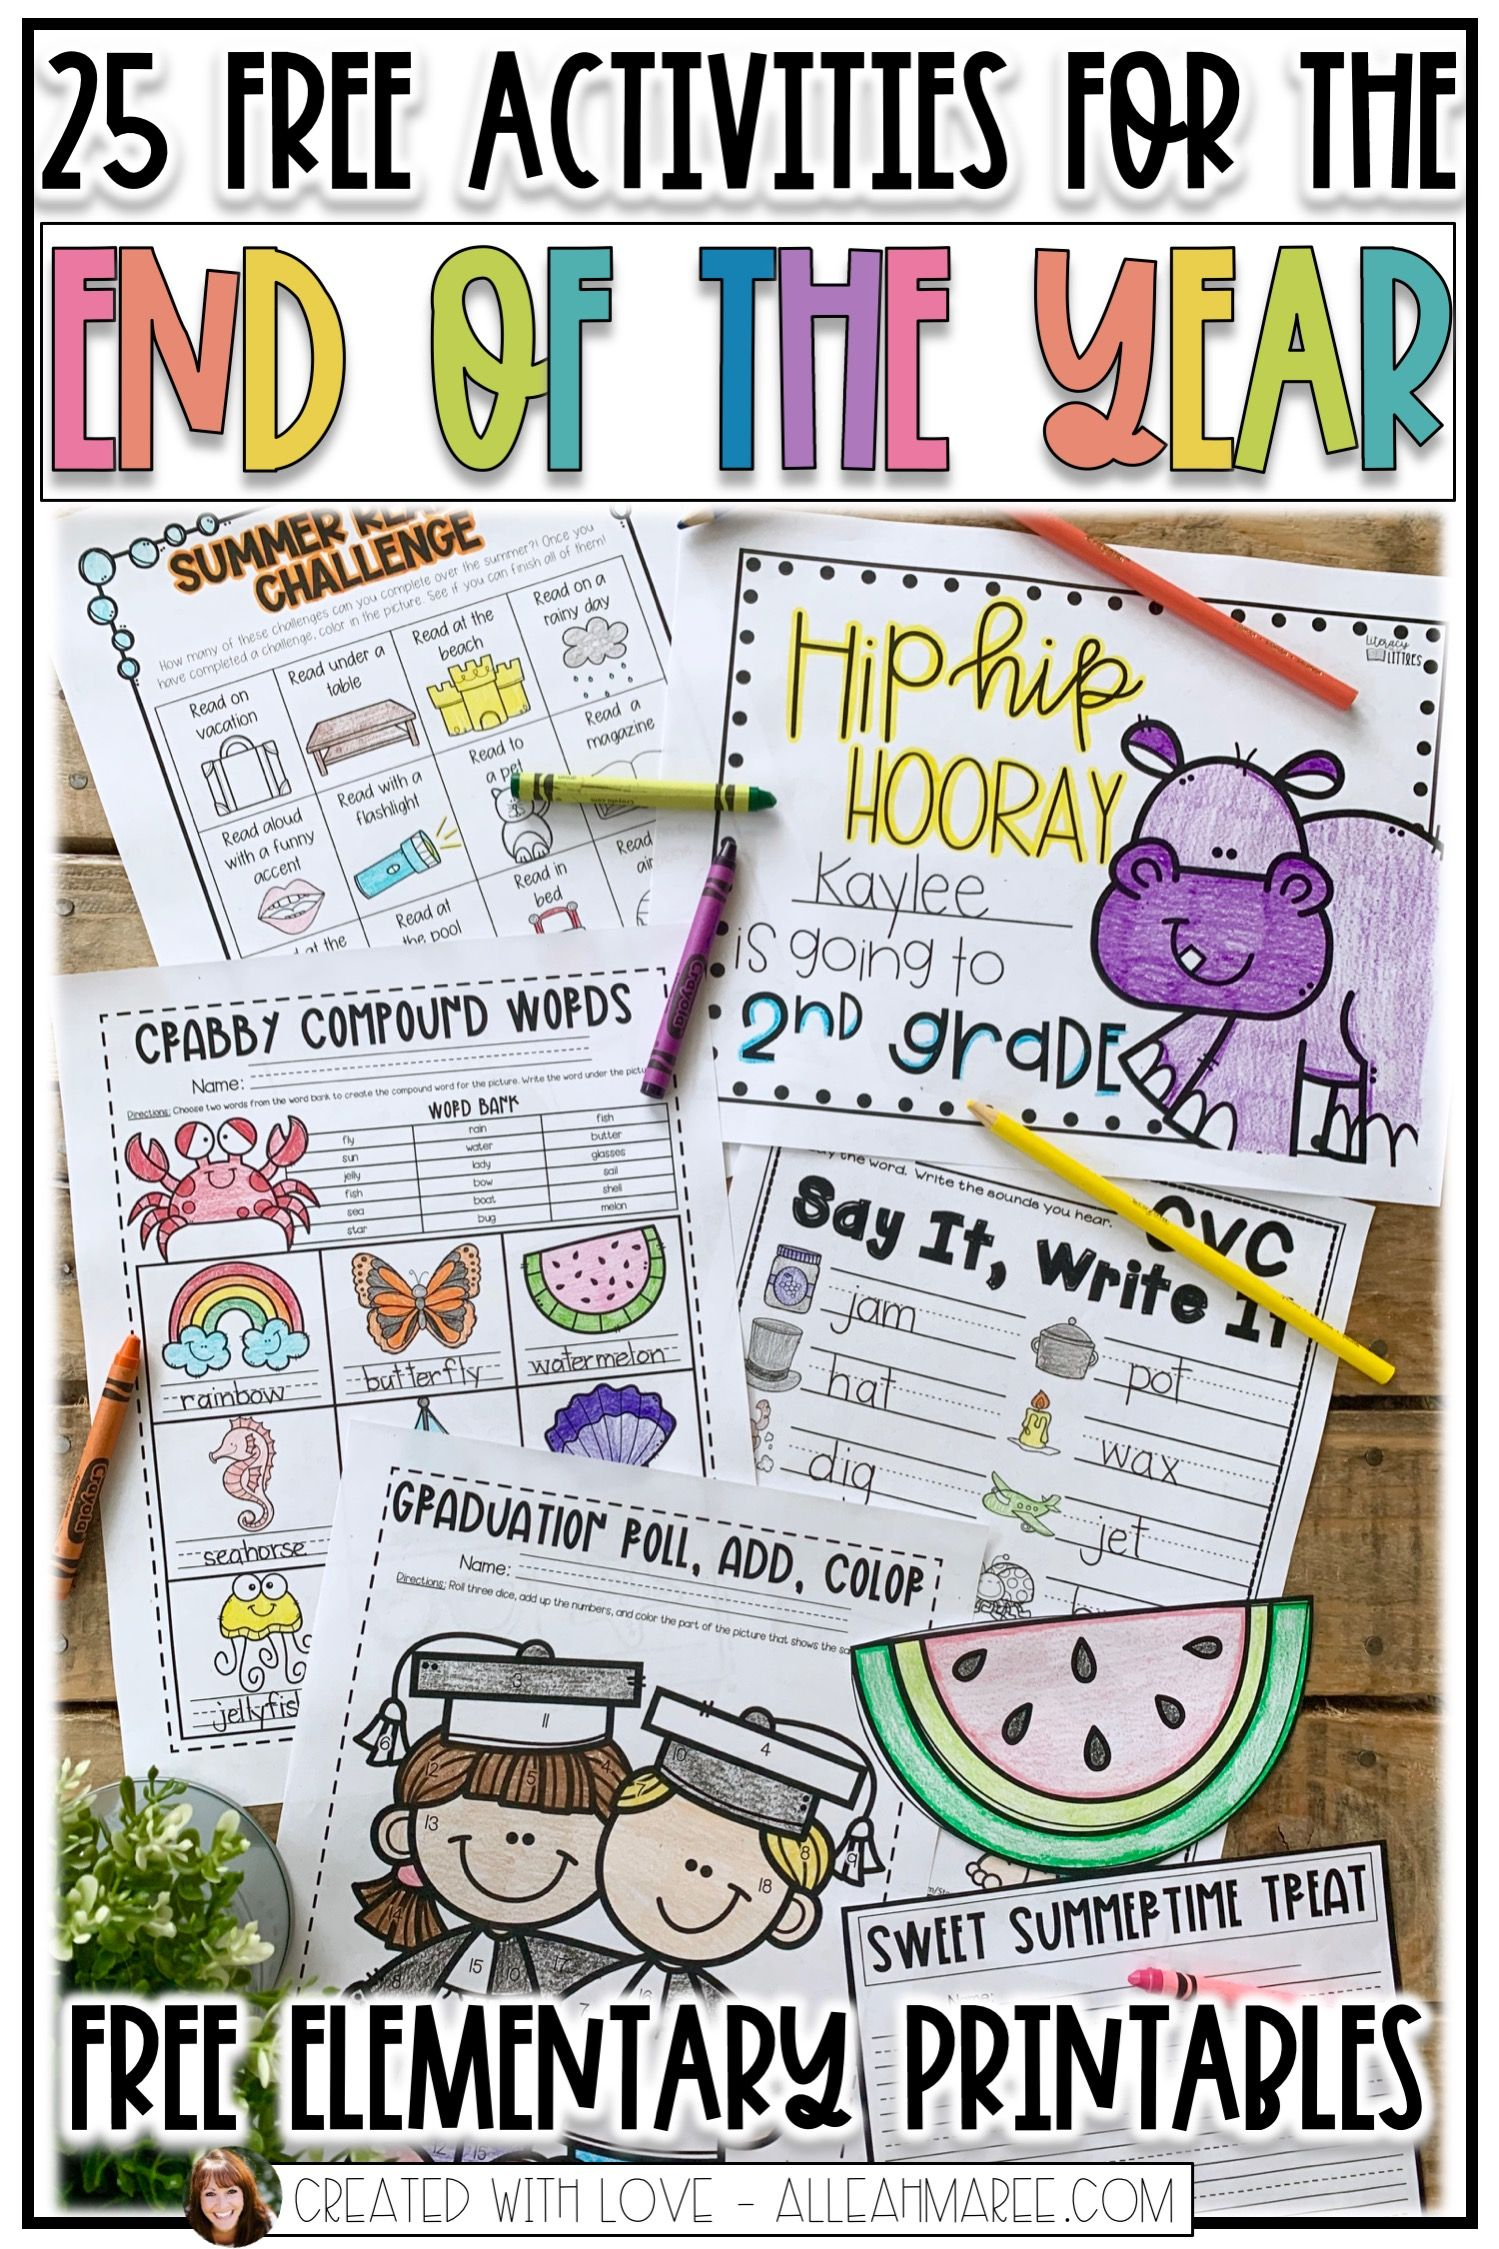 25 Free Activities For The End Of The Year